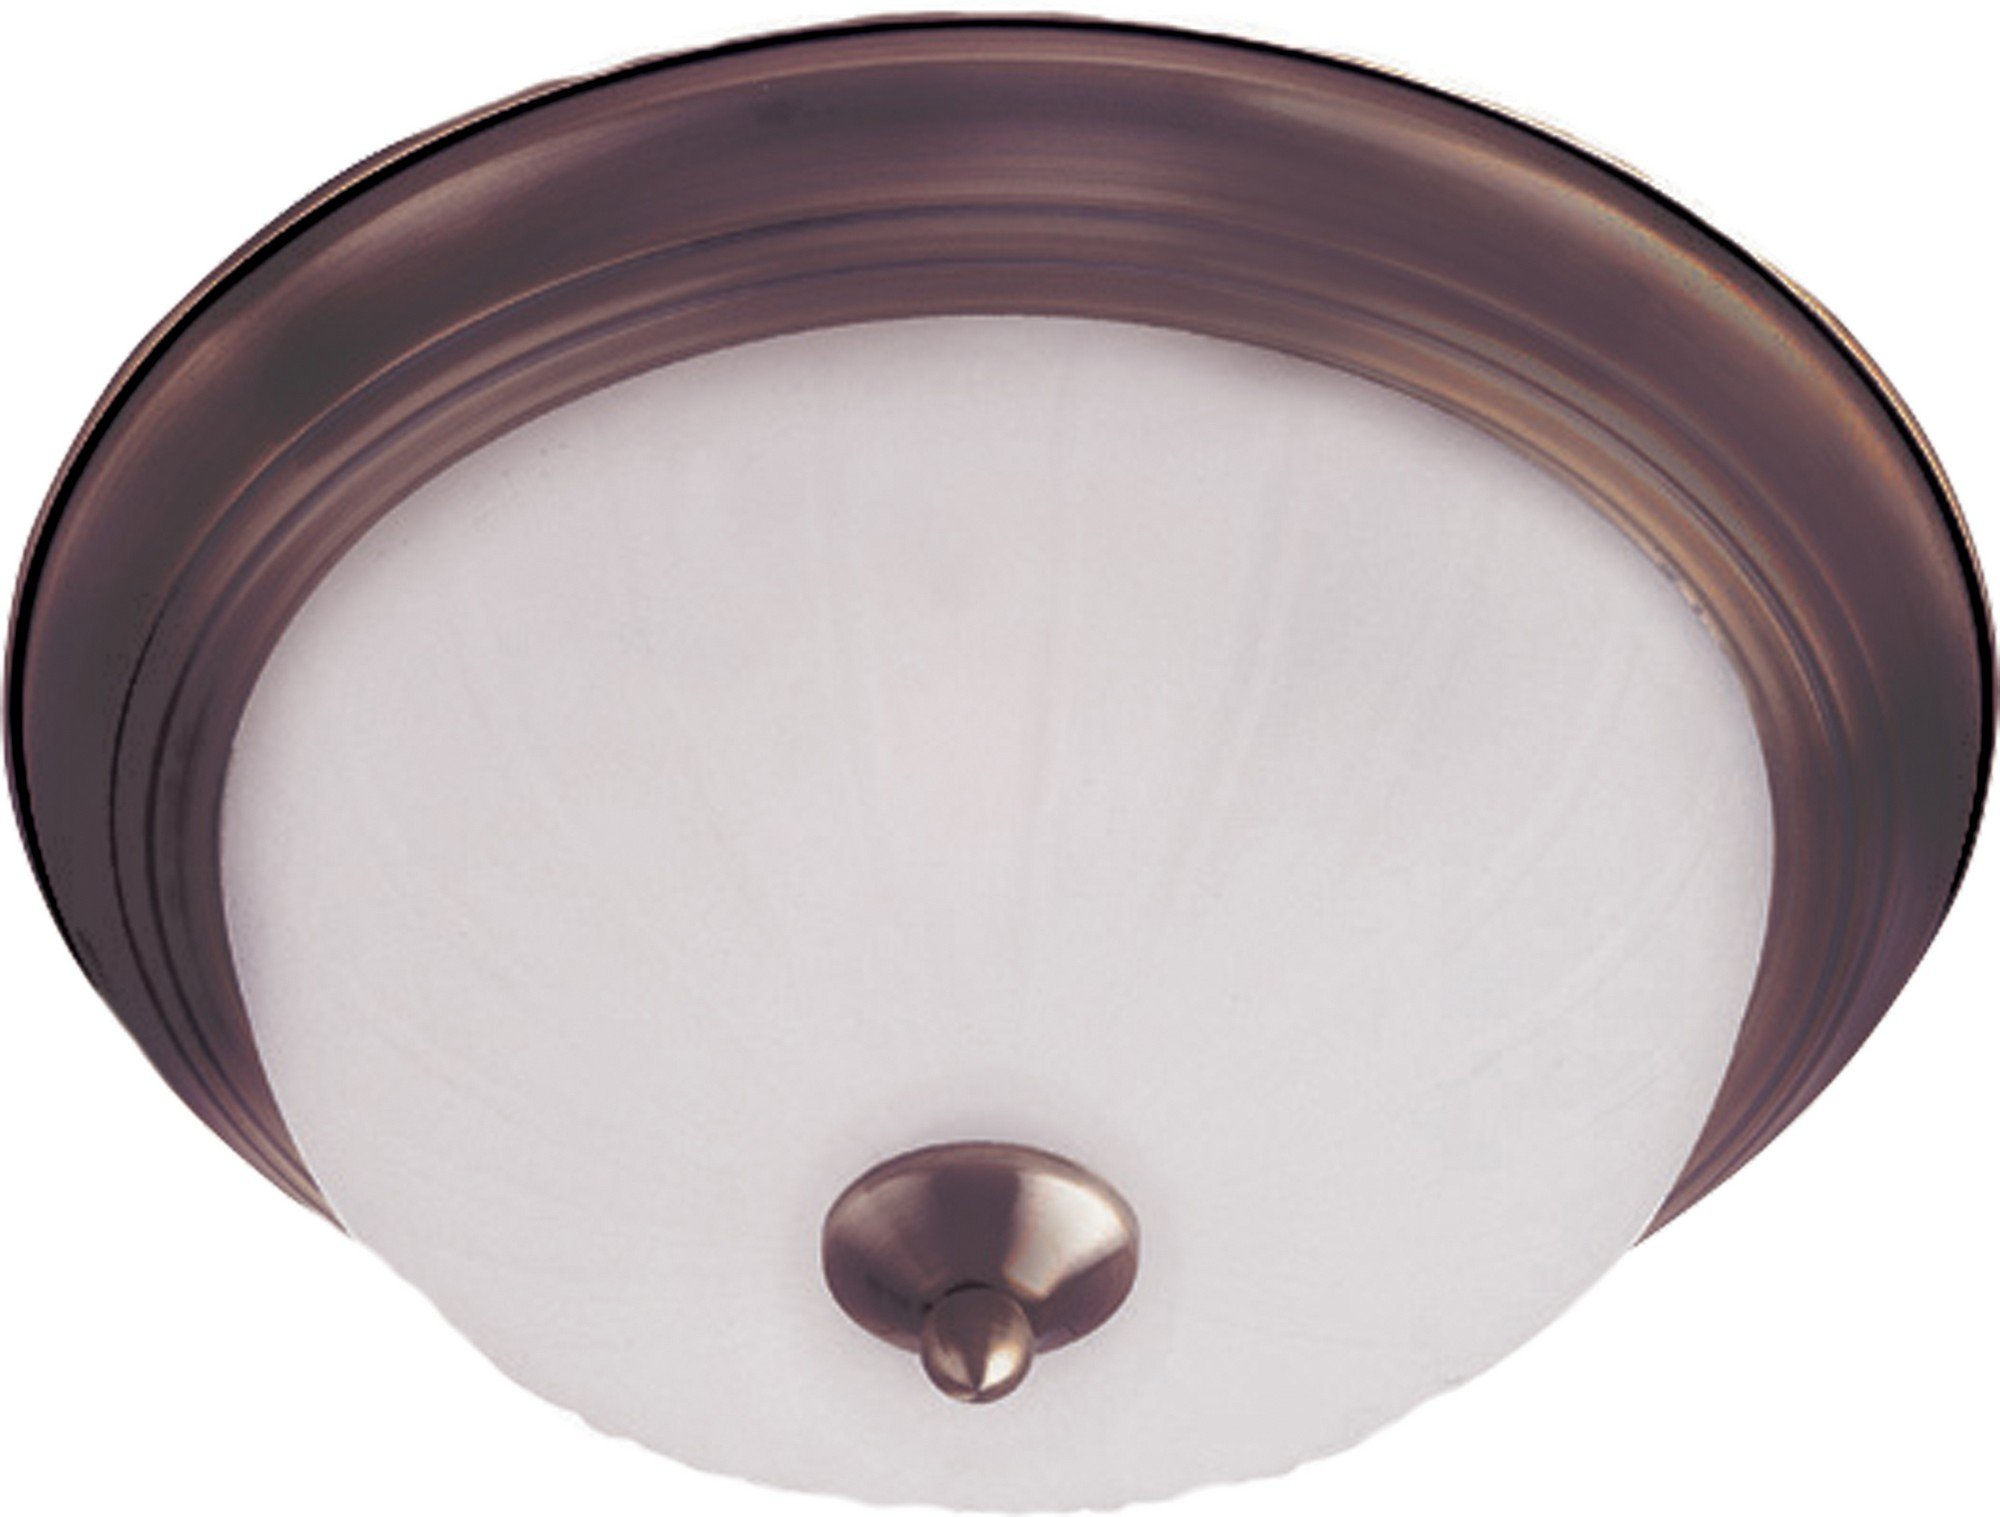 Maxim 5830FTOI Essentials 1-Light Flush Mount, Oil Rubbed Bronze Finish, Frosted Glass, MB Incandescent Incandescent Bulb , 13W Max., Dry Safety Rating, 2700K Color Temp, Glass Shade Material, 4500 Rated Lumens